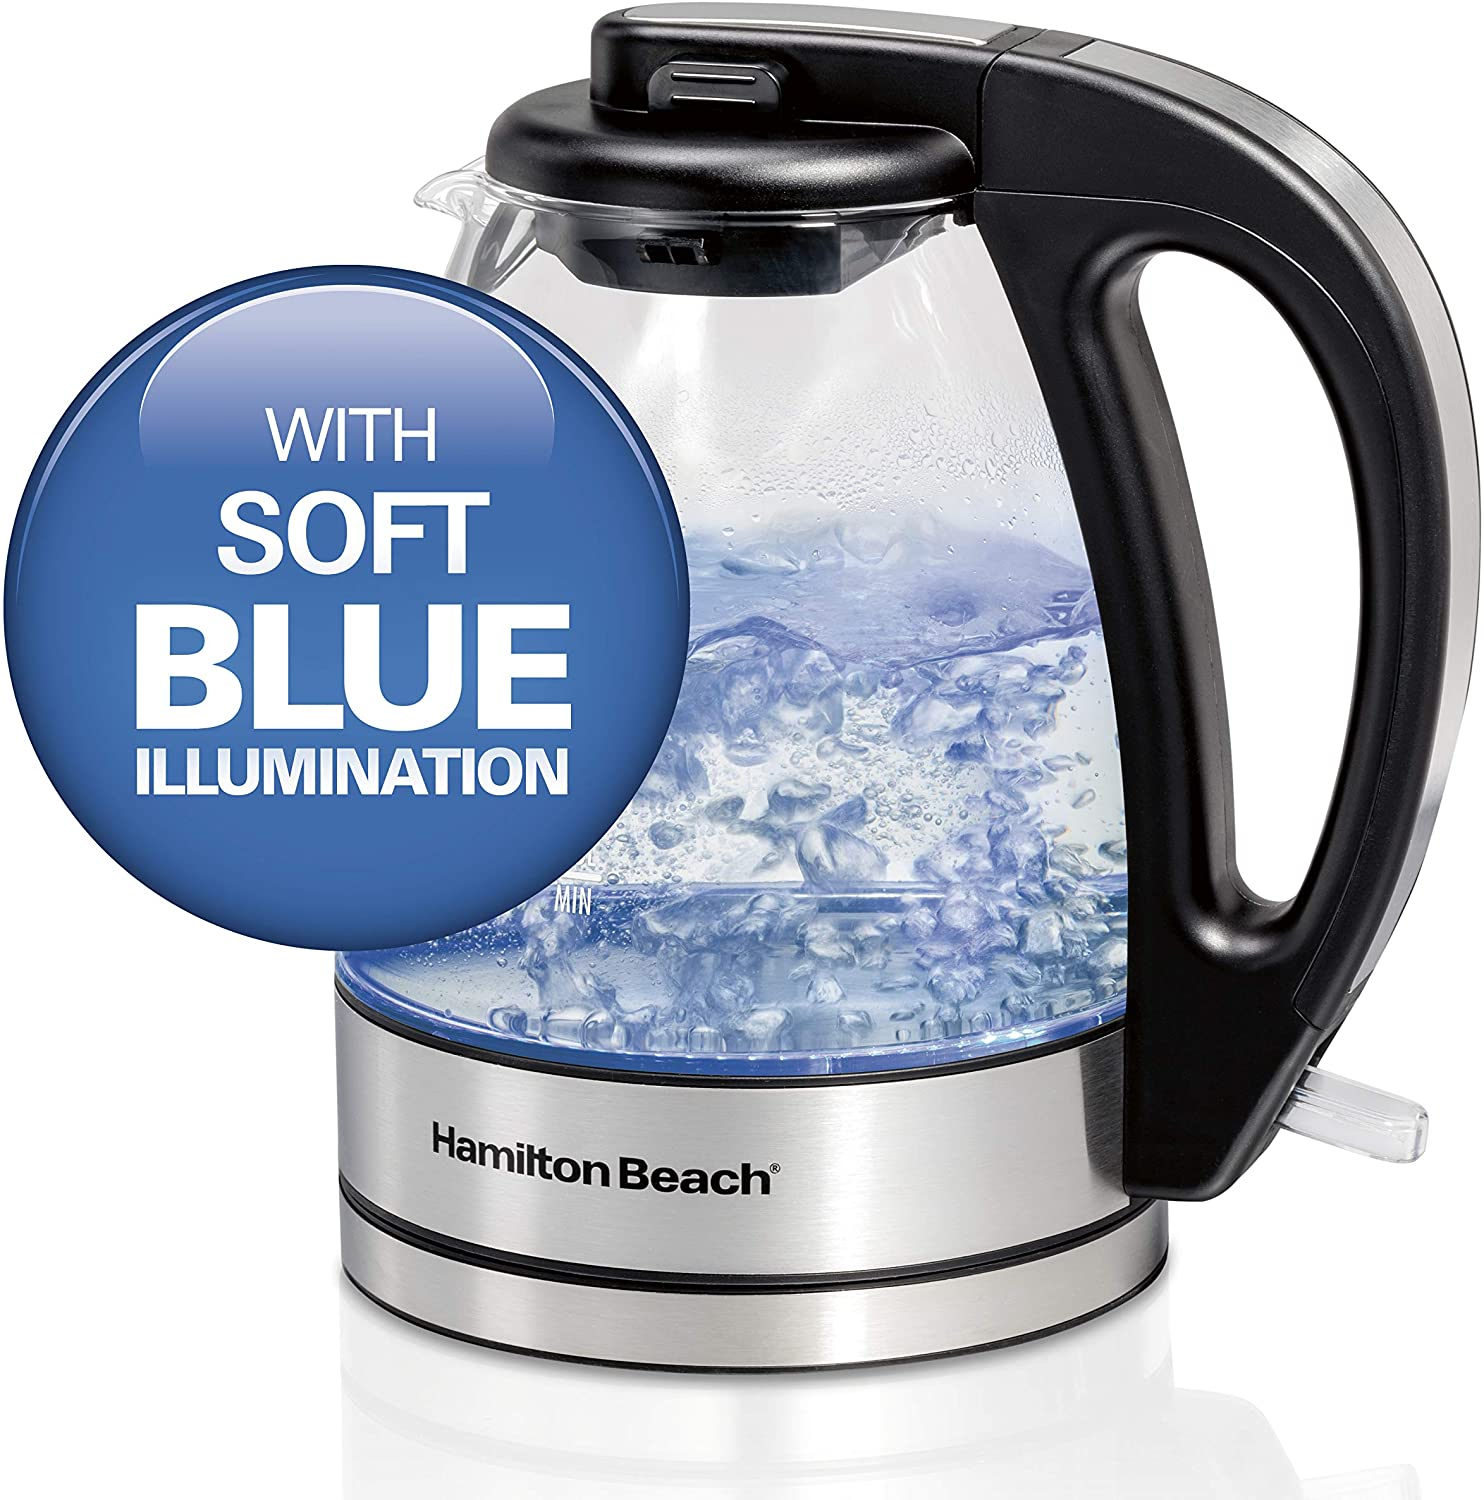 Automatic Shutoff Cord-Free Design 1.7 Liter Capacity Hamilton Beach 40864C Glass Electric Kettle